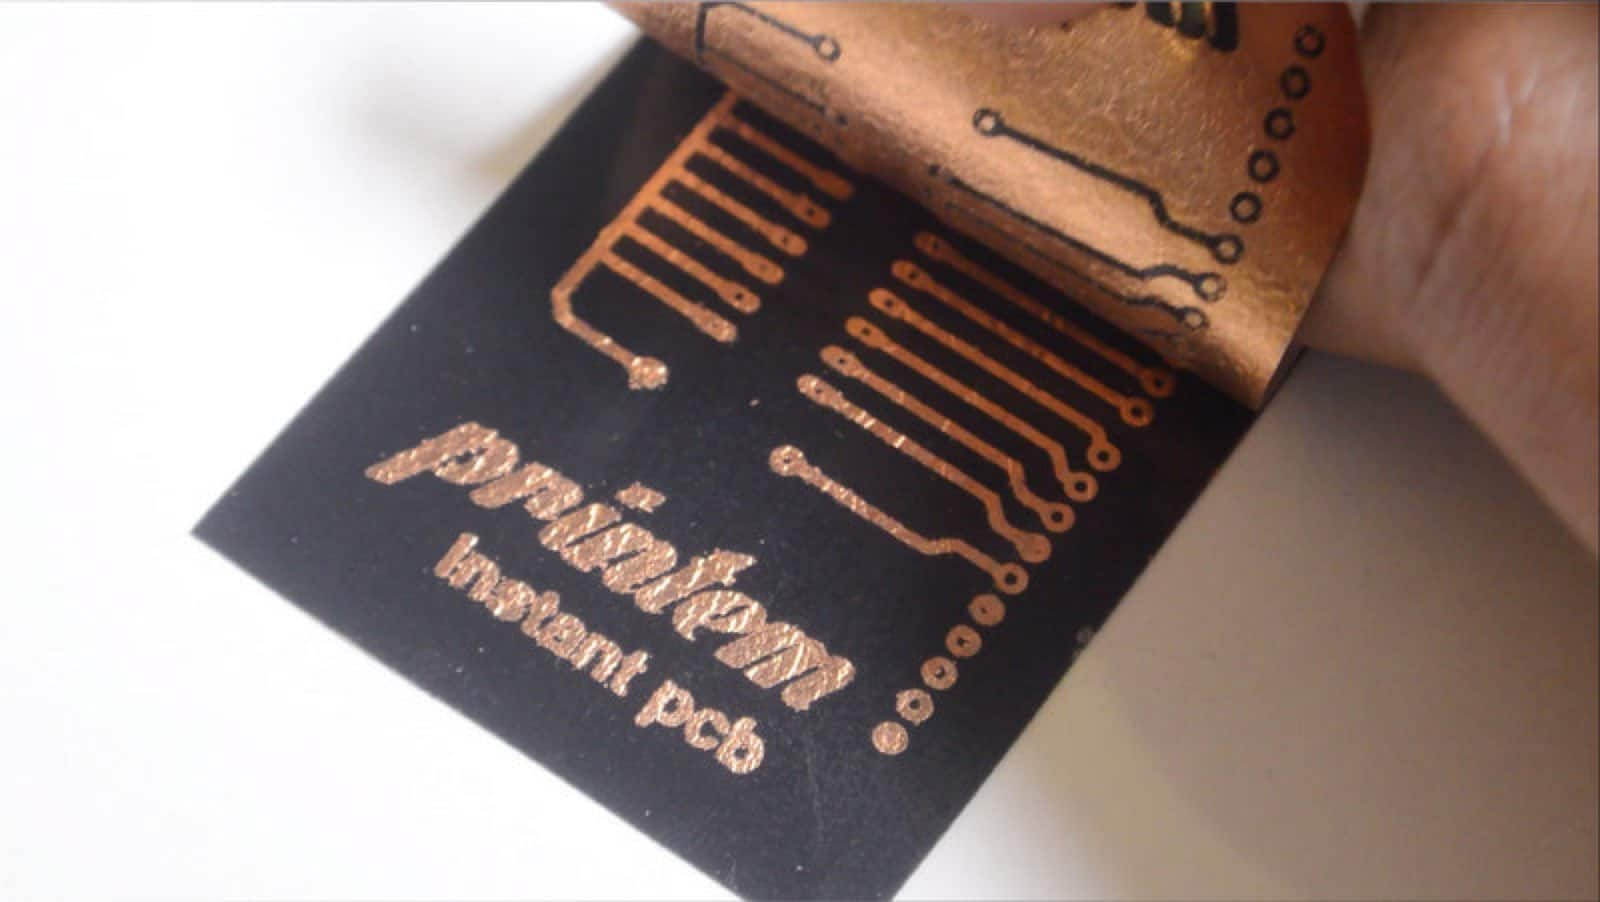 Printem - a printed circuit board using your printer